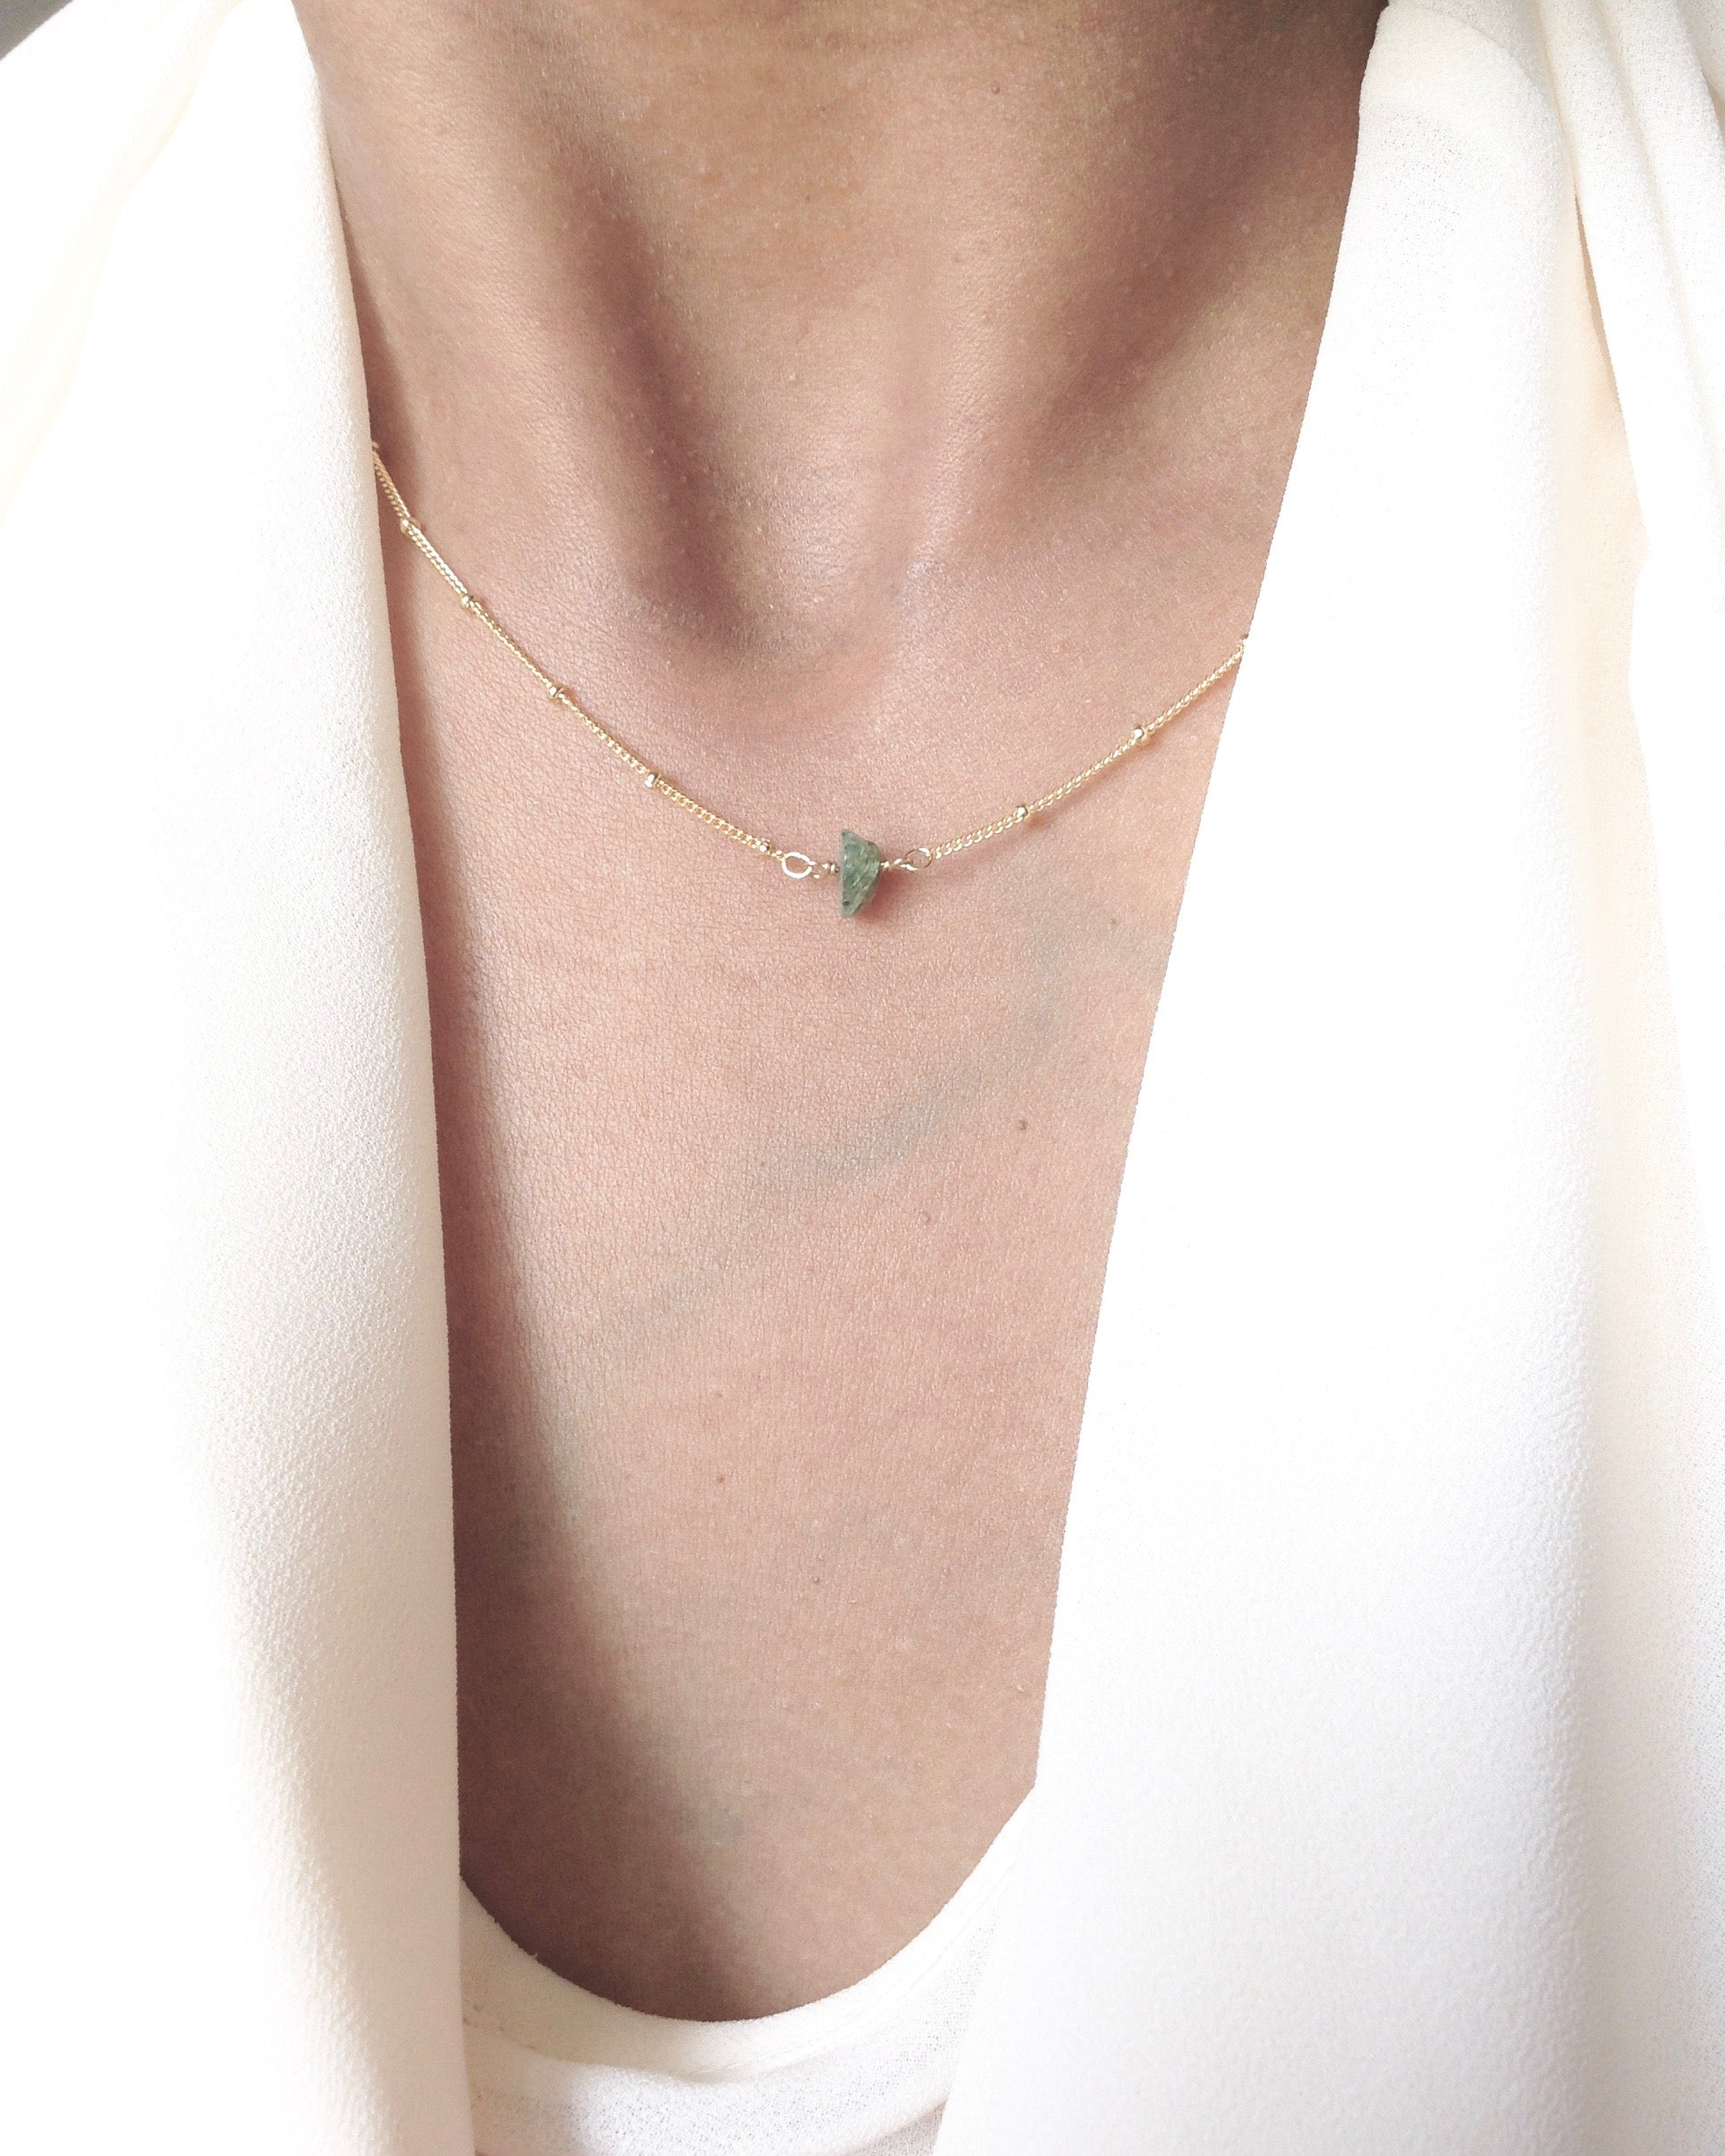 Tiny Raw Emerald Solitaire Necklace in Gold Filled or Sterling Silver | Simple Delicate Necklace | IB Jewelry